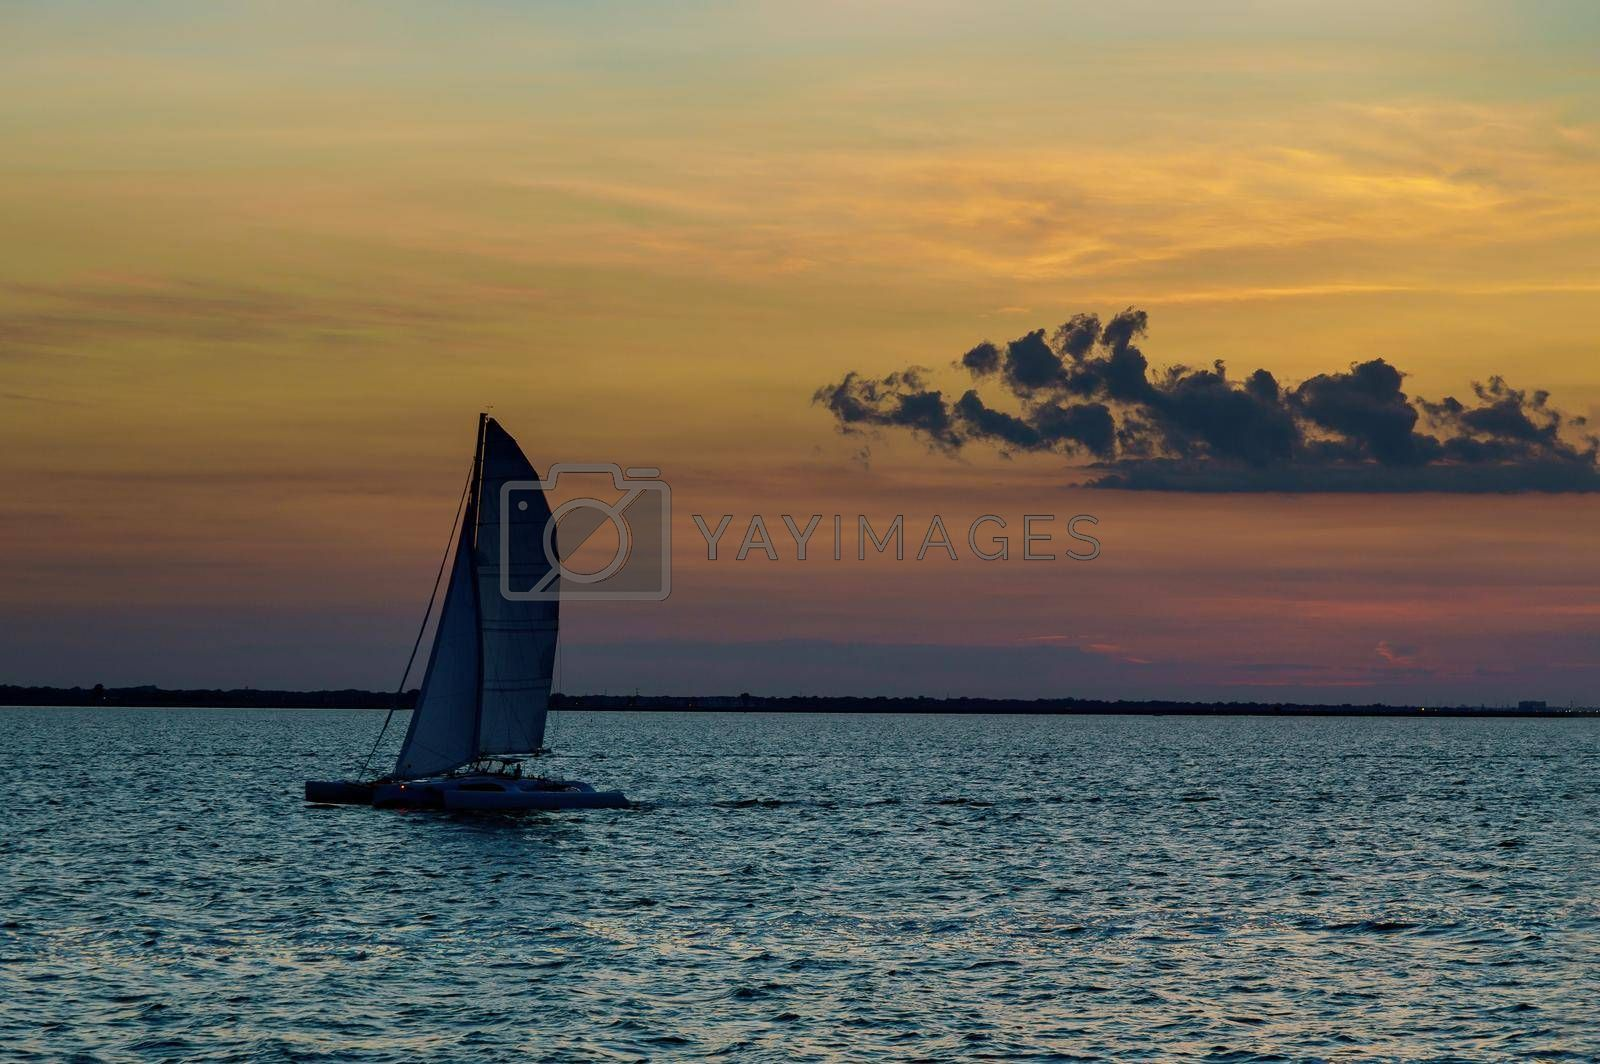 Holiday lifestyle landscape with skyline yacht sailing against sunset sailboat romantic trip on the ocean maritime evening walk during sunset.